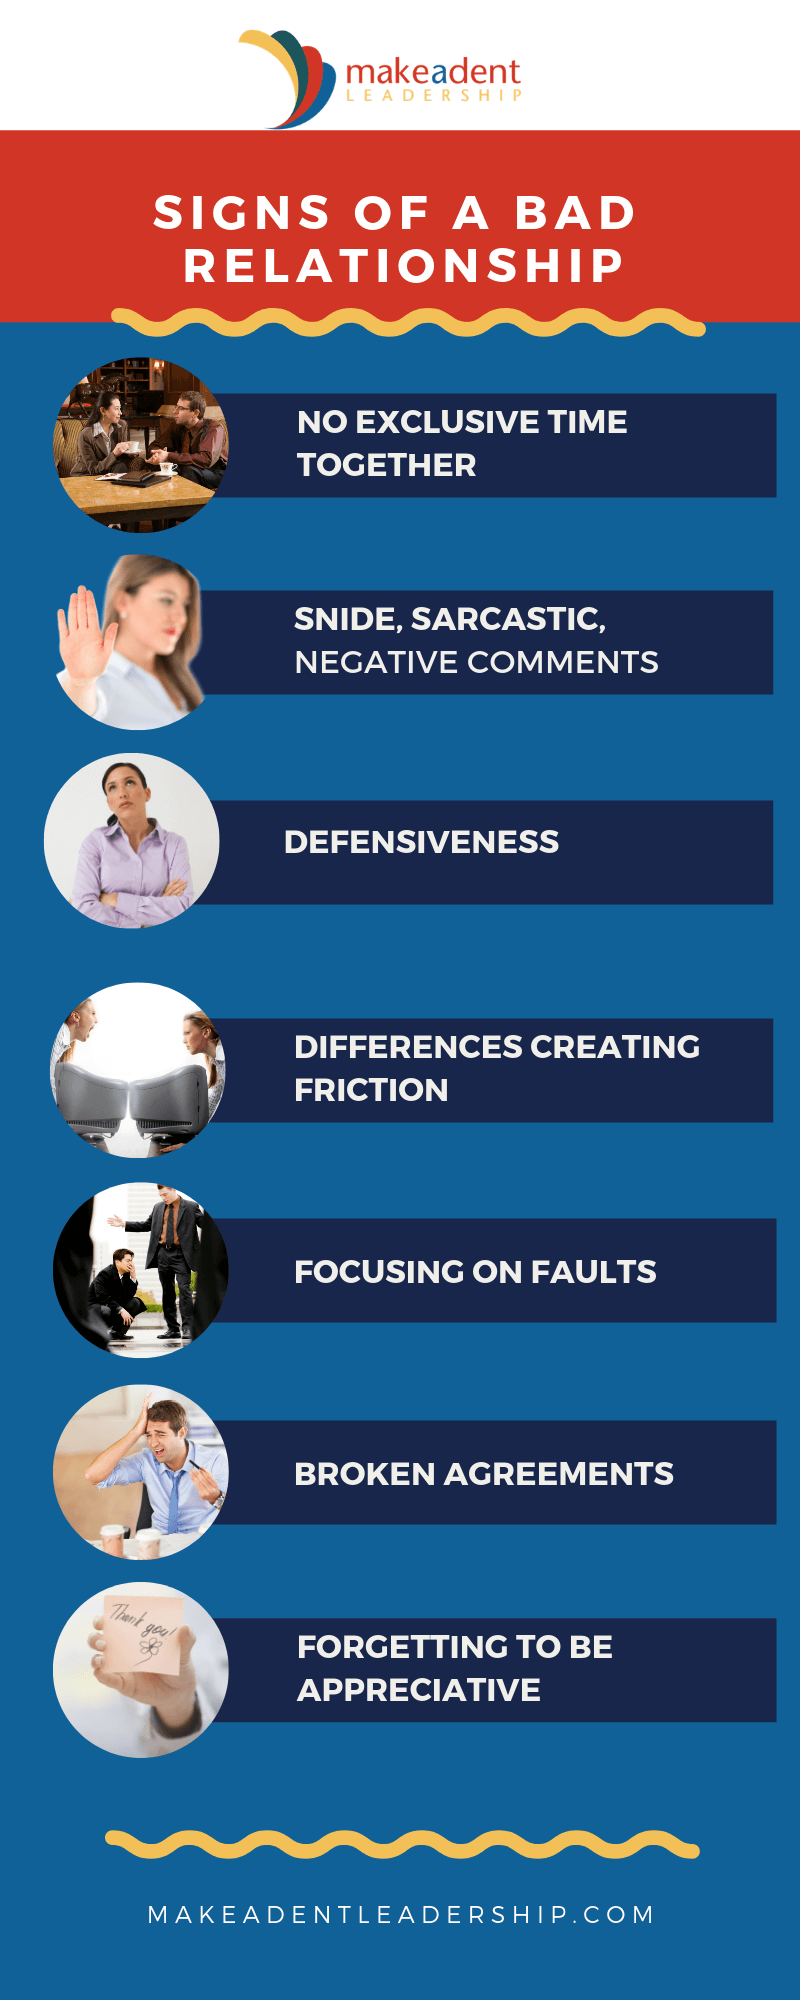 Signs of a Bad Relationship Infographic